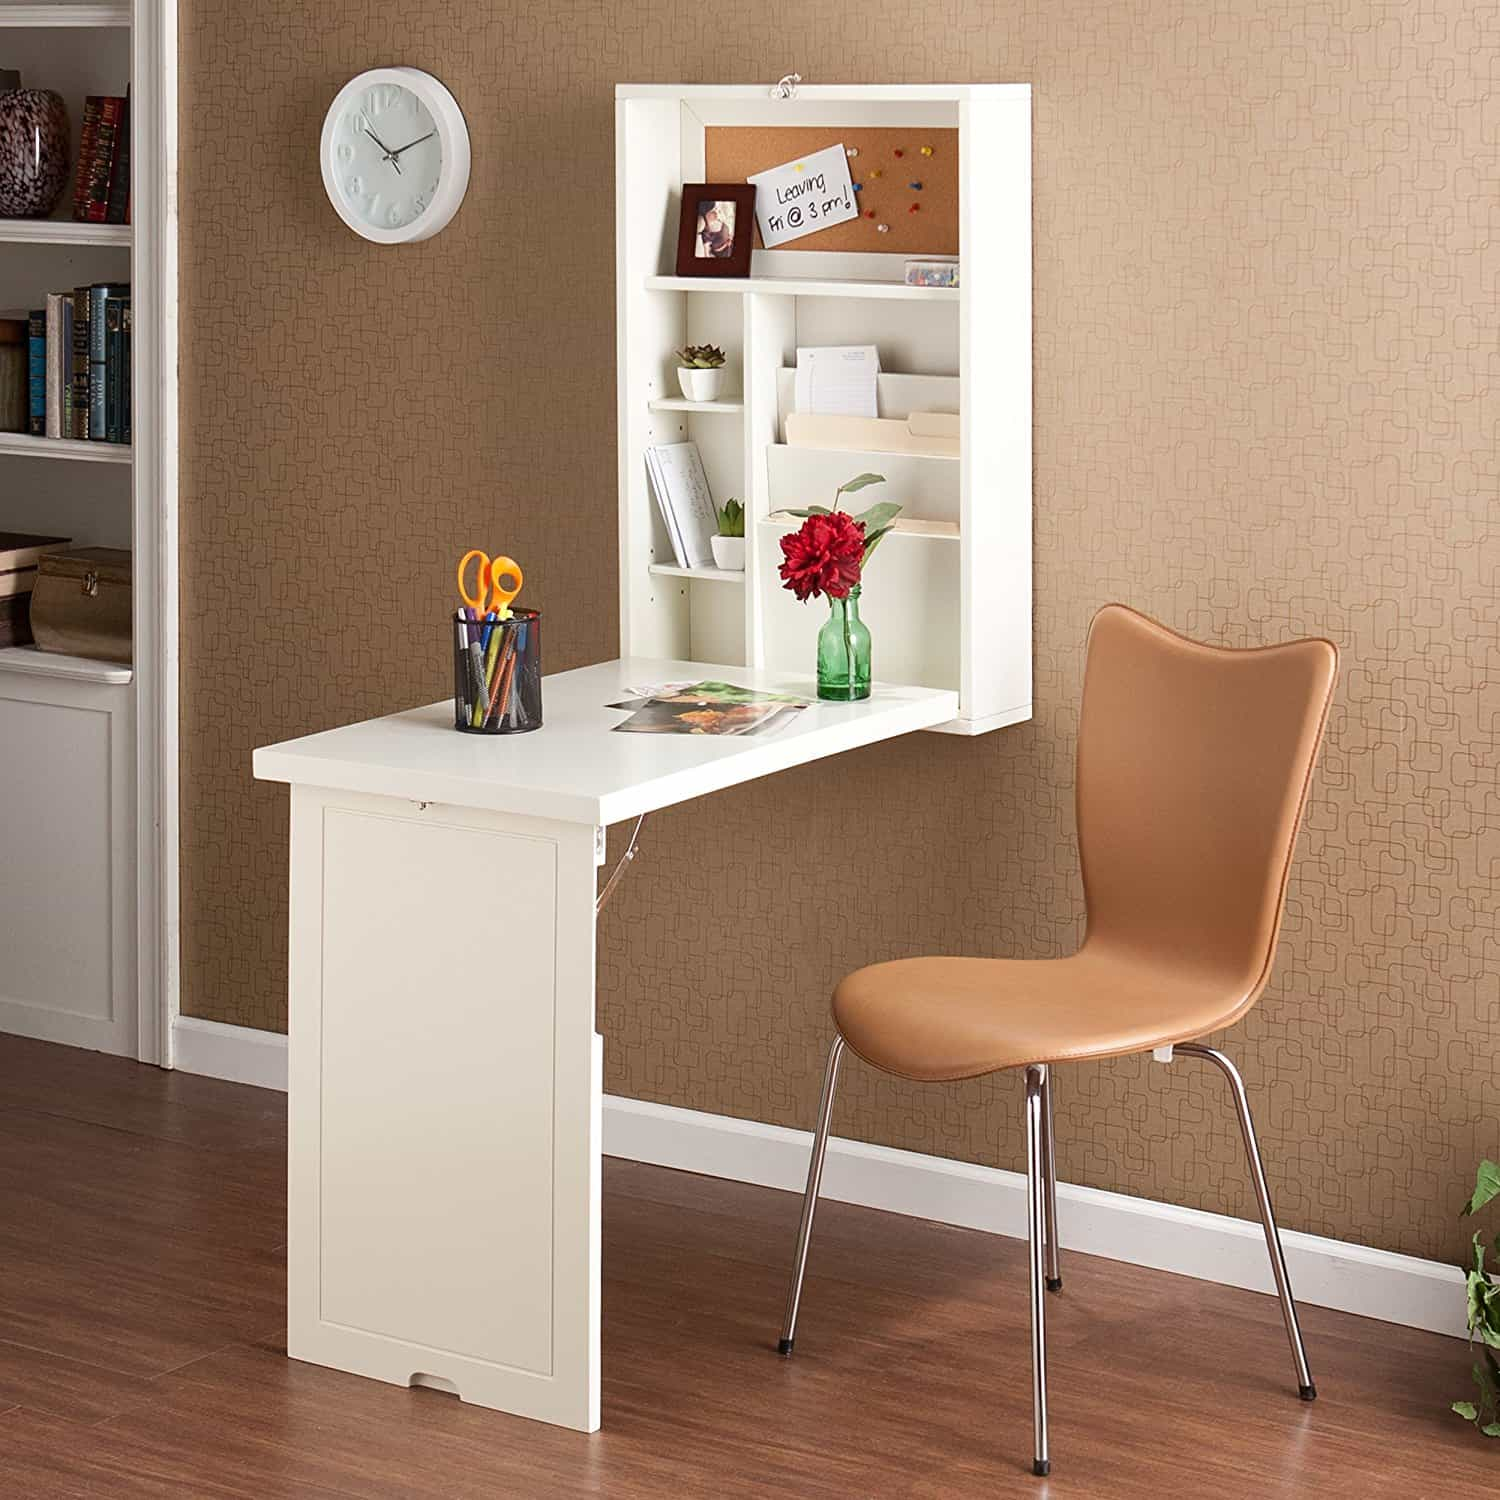 White Wall Mounted Fold Out Desk With Tan Chair Decorative Items On